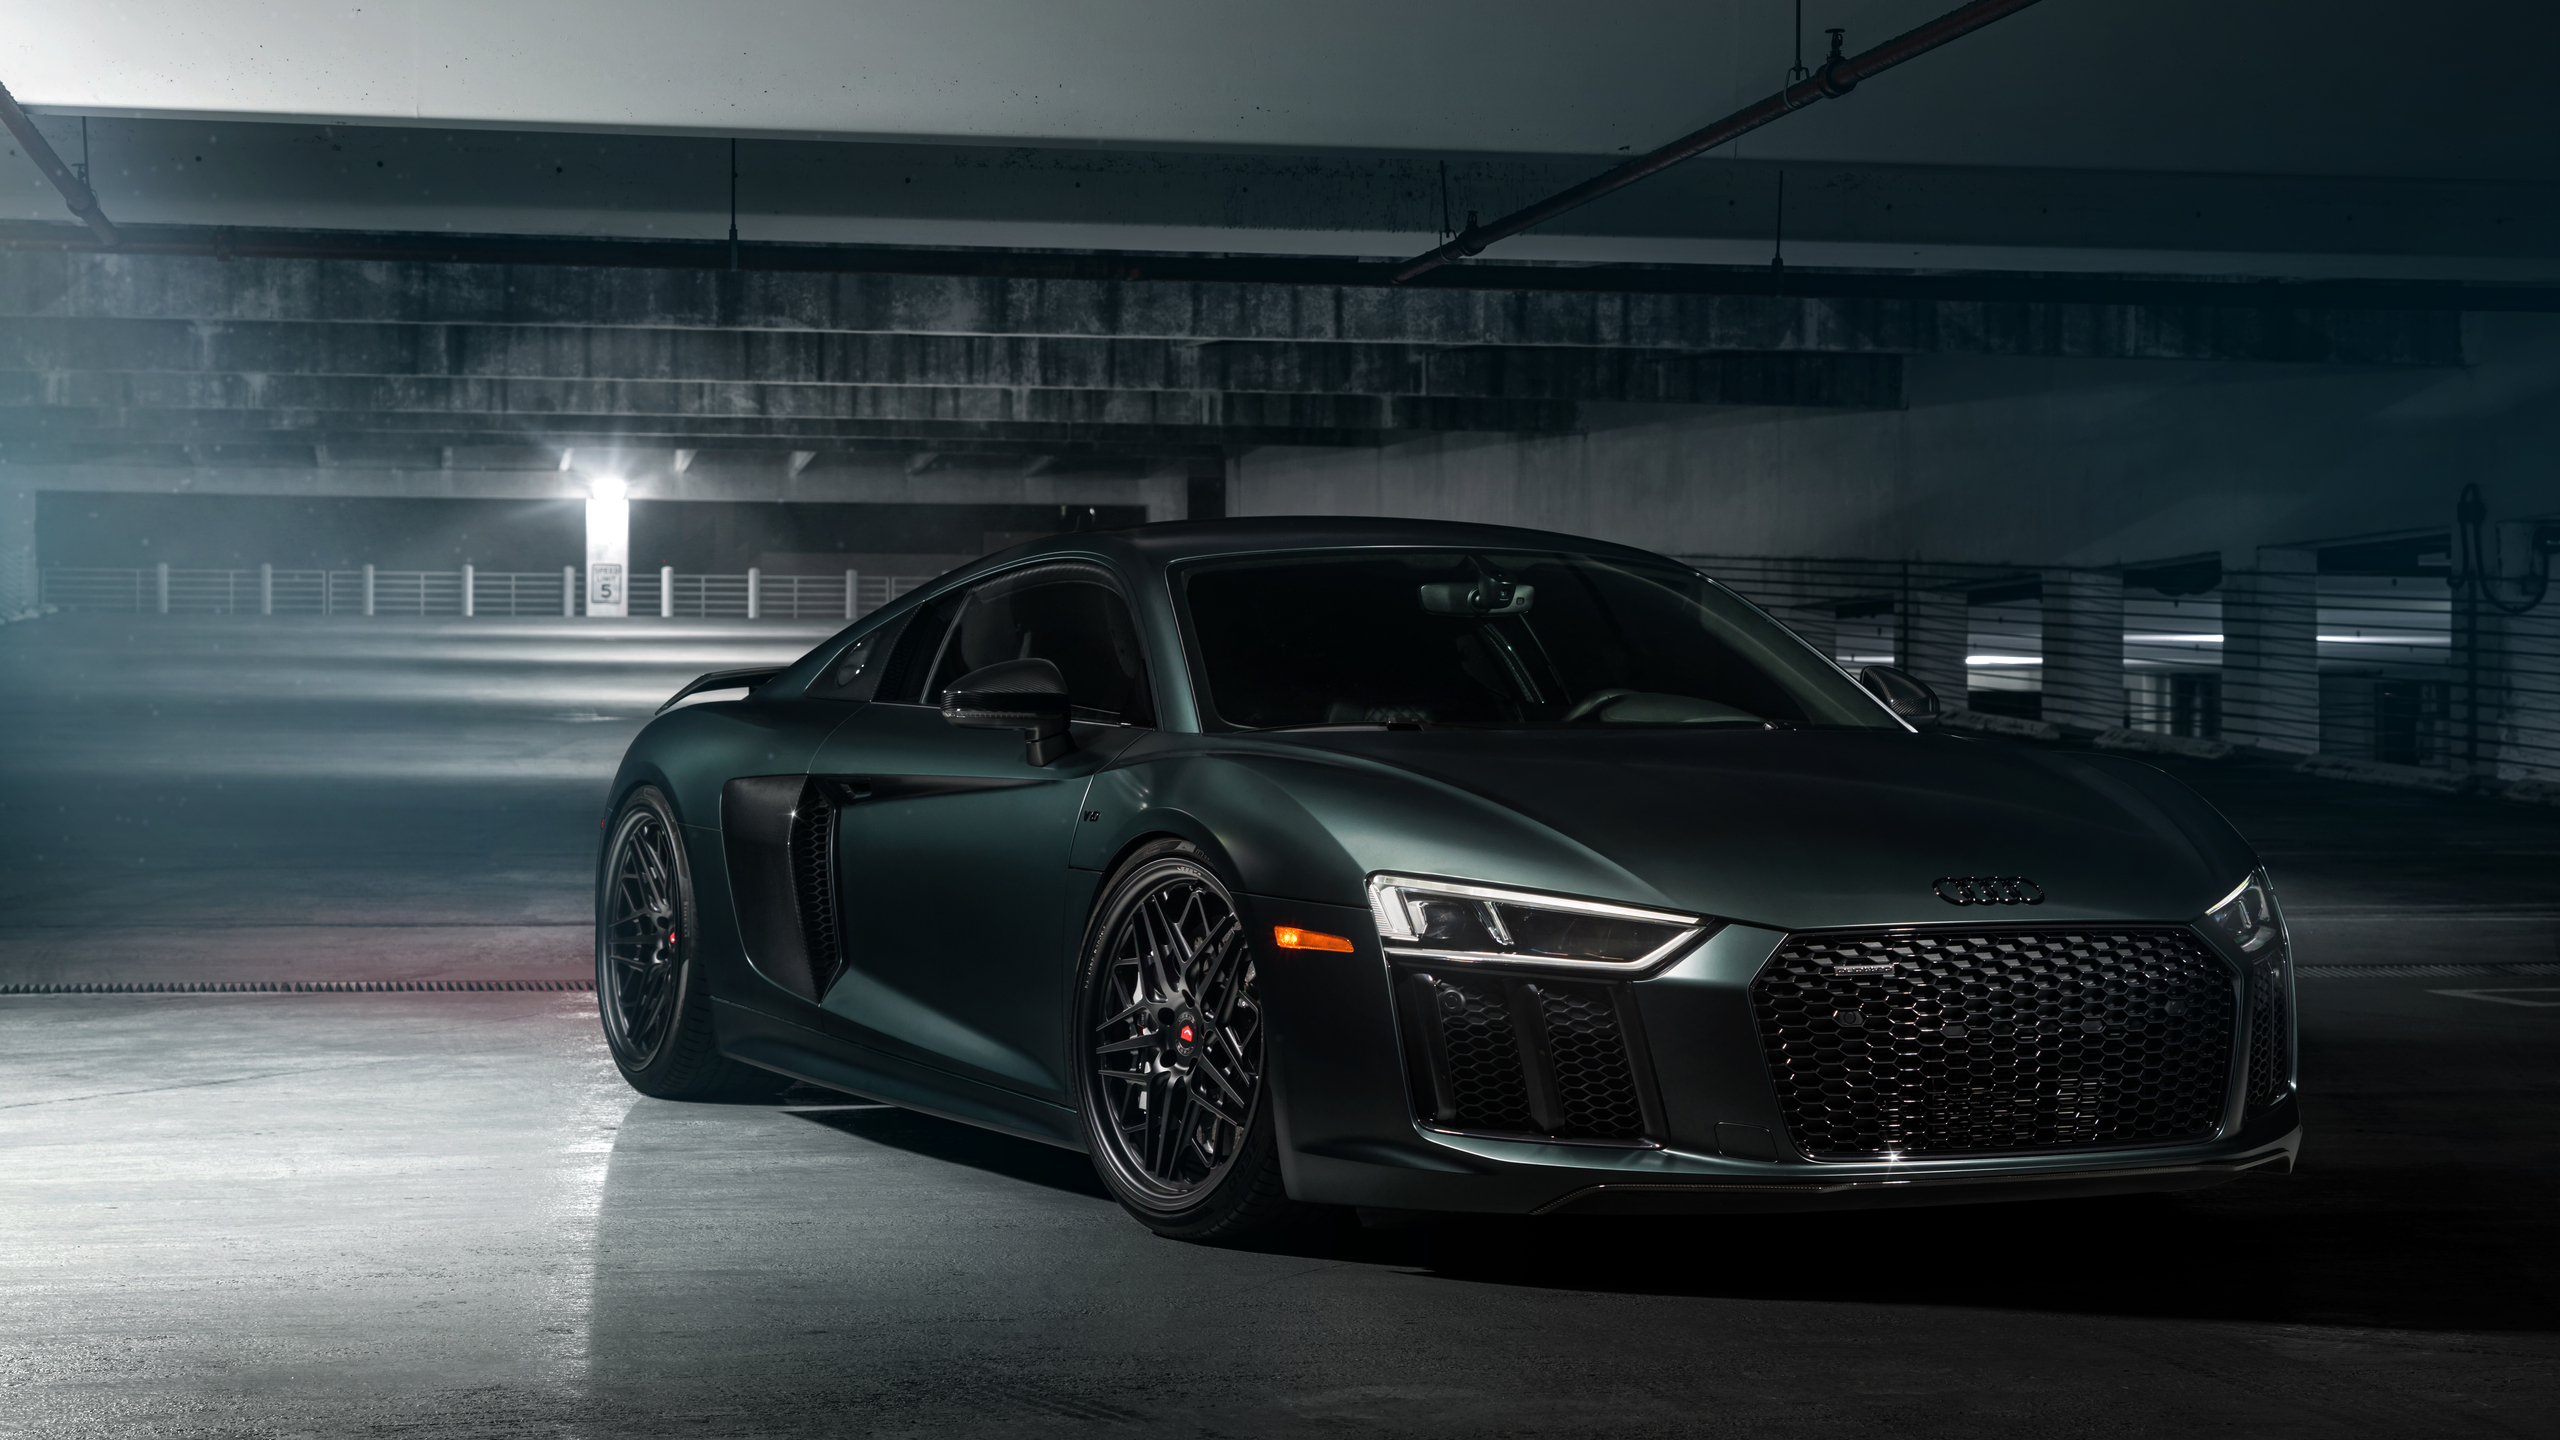 2560x1440 2018 Audi R8 V10 Front 1440p Resolution Hd 4k